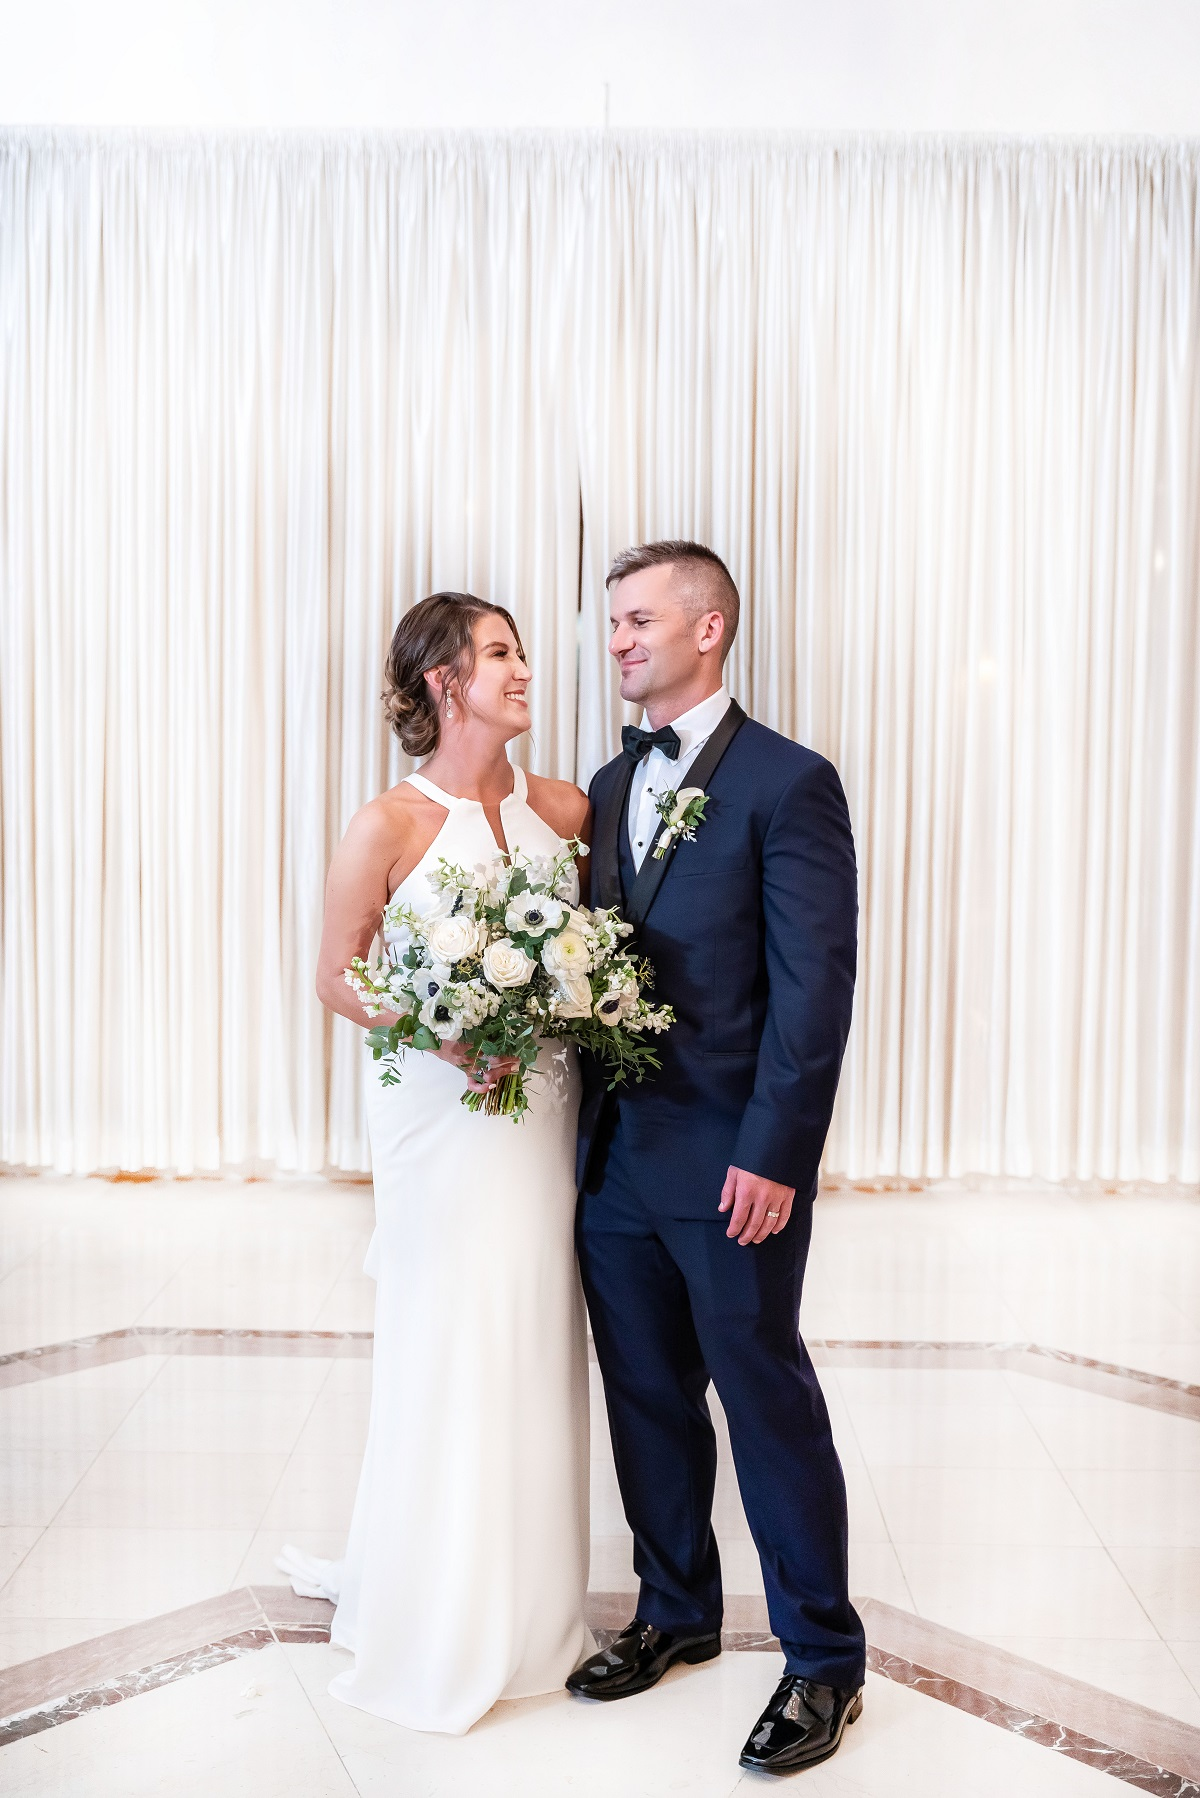 Haley Harris and Jacob Harder posing for a formal photo on their wedding day on 'Married at First Sight'